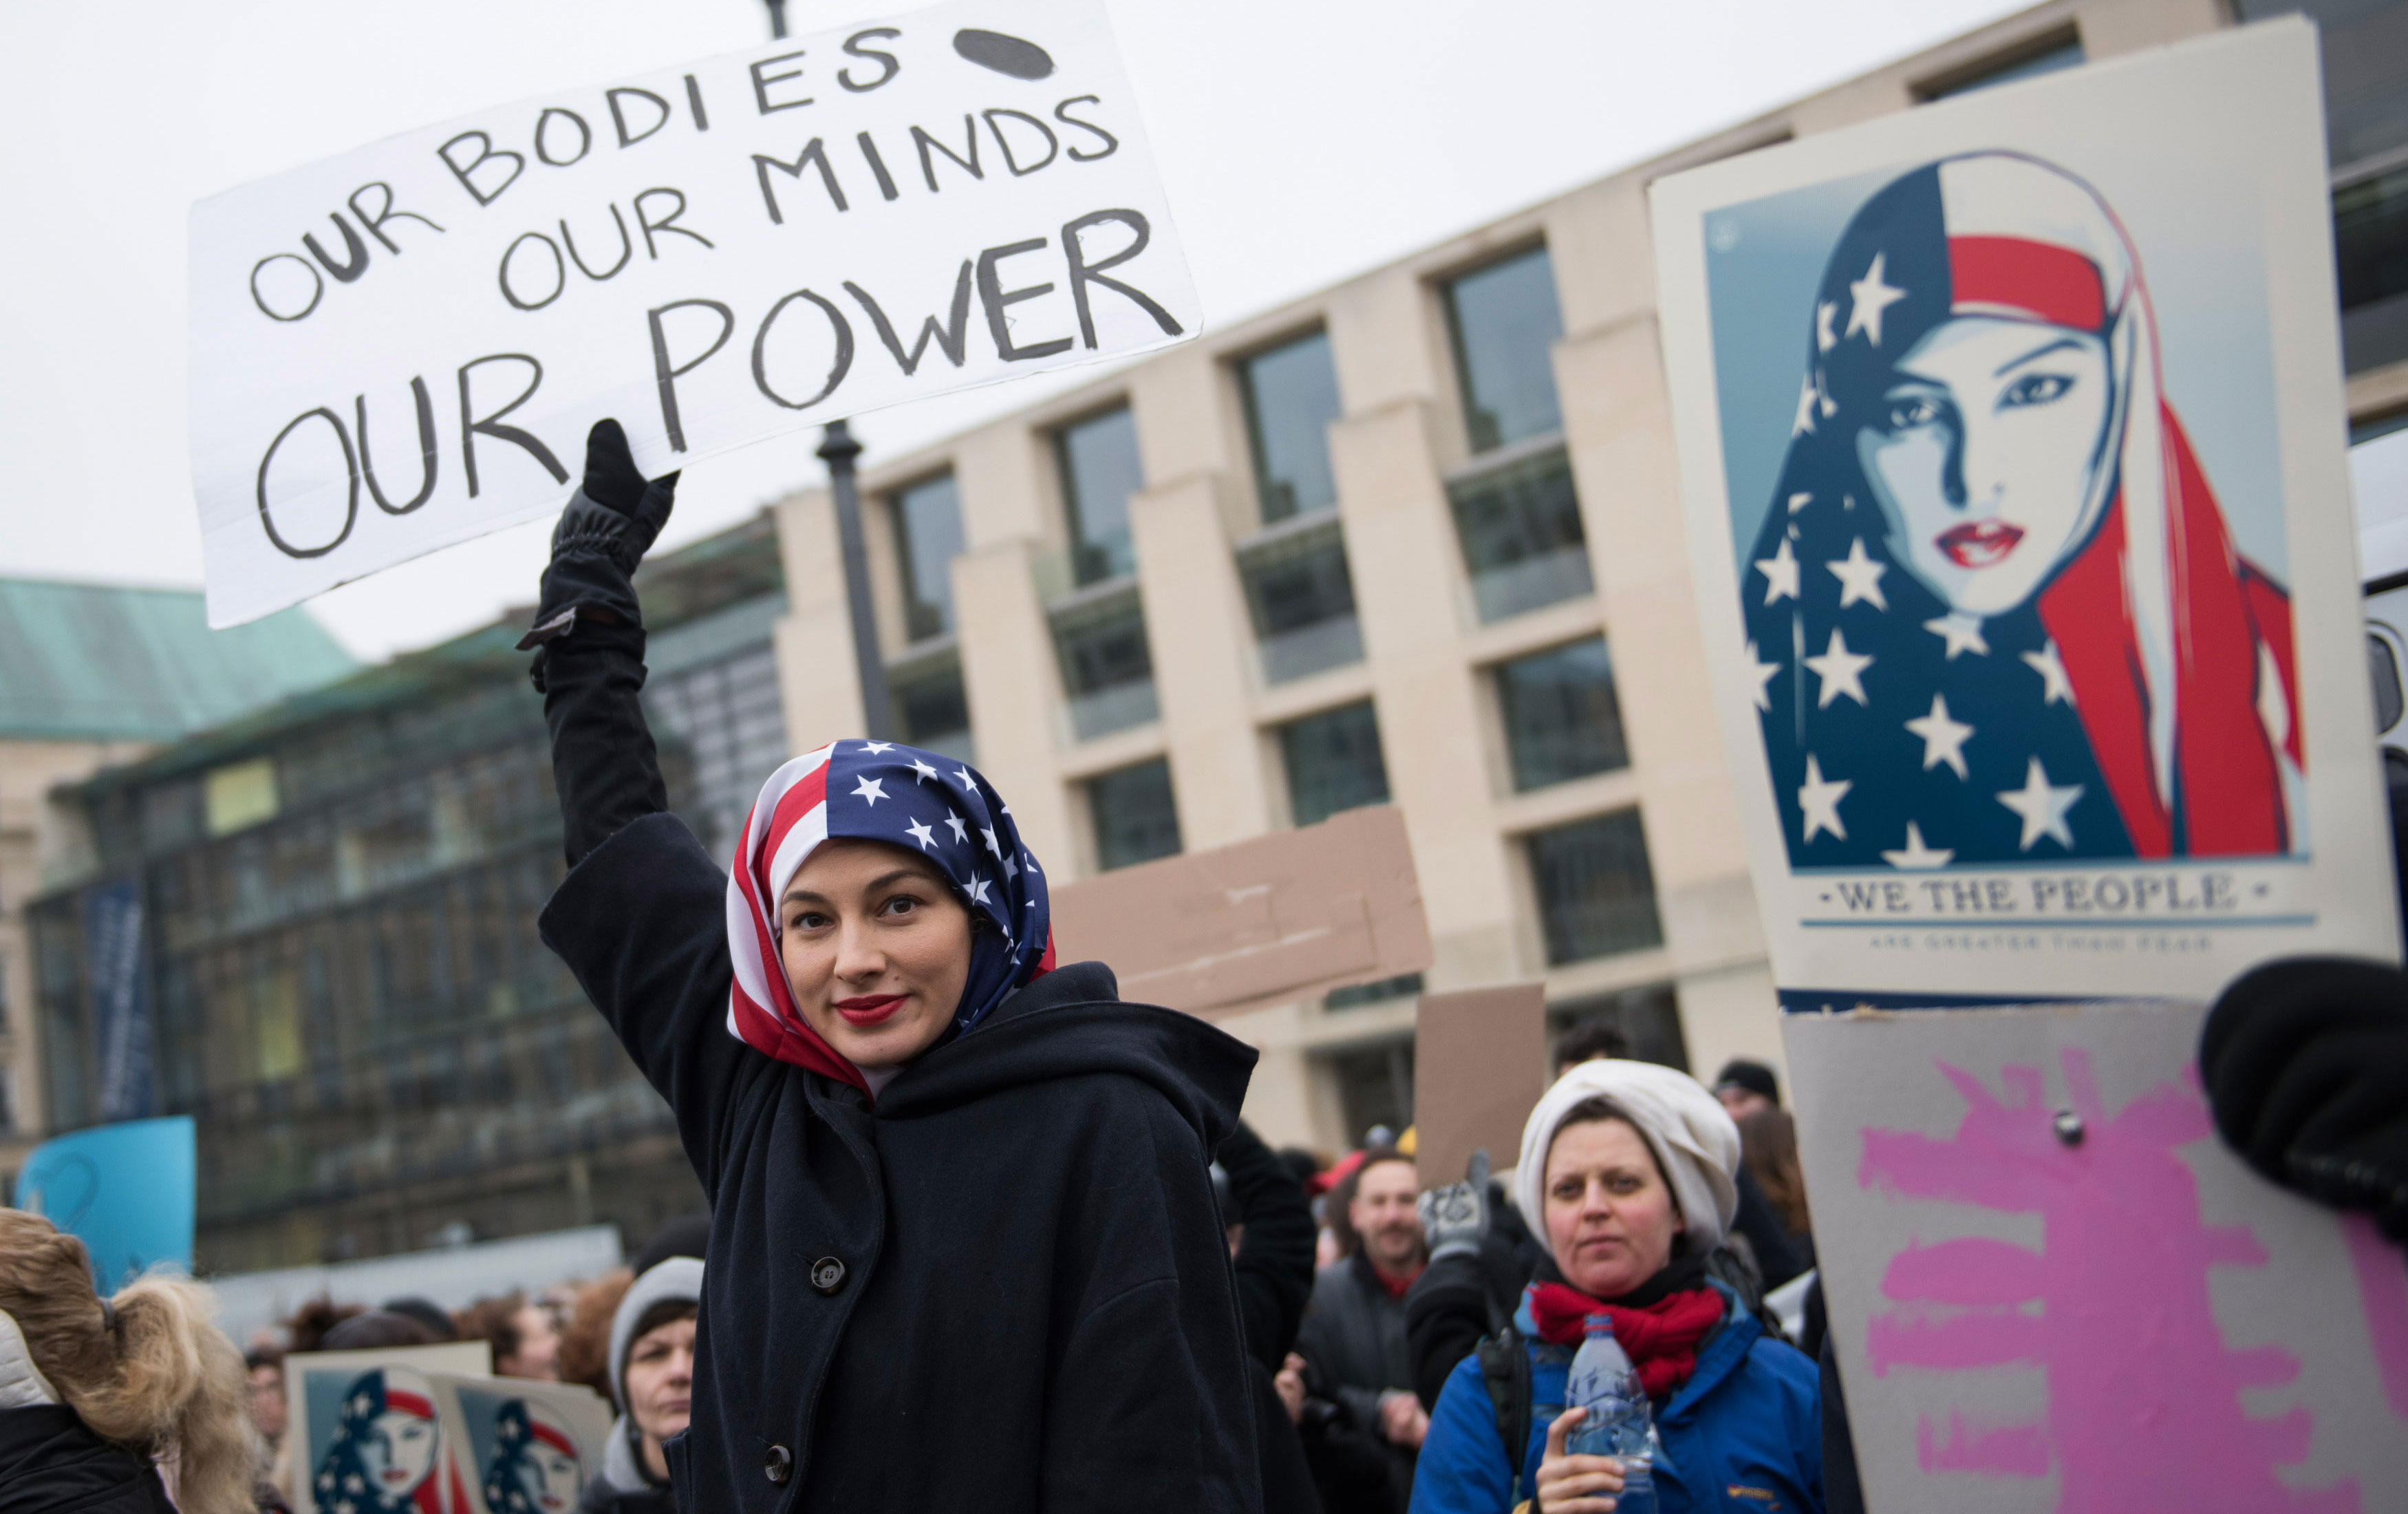 A woman wearing an American flag as a headscarf attends a protest for women's rights and freedom in solidarity with the Women's March on Washington in front of Brandenburger Tor on January 21, 2017 in Berlin, Germany (Photo: Steffi Loos / Getty Images)